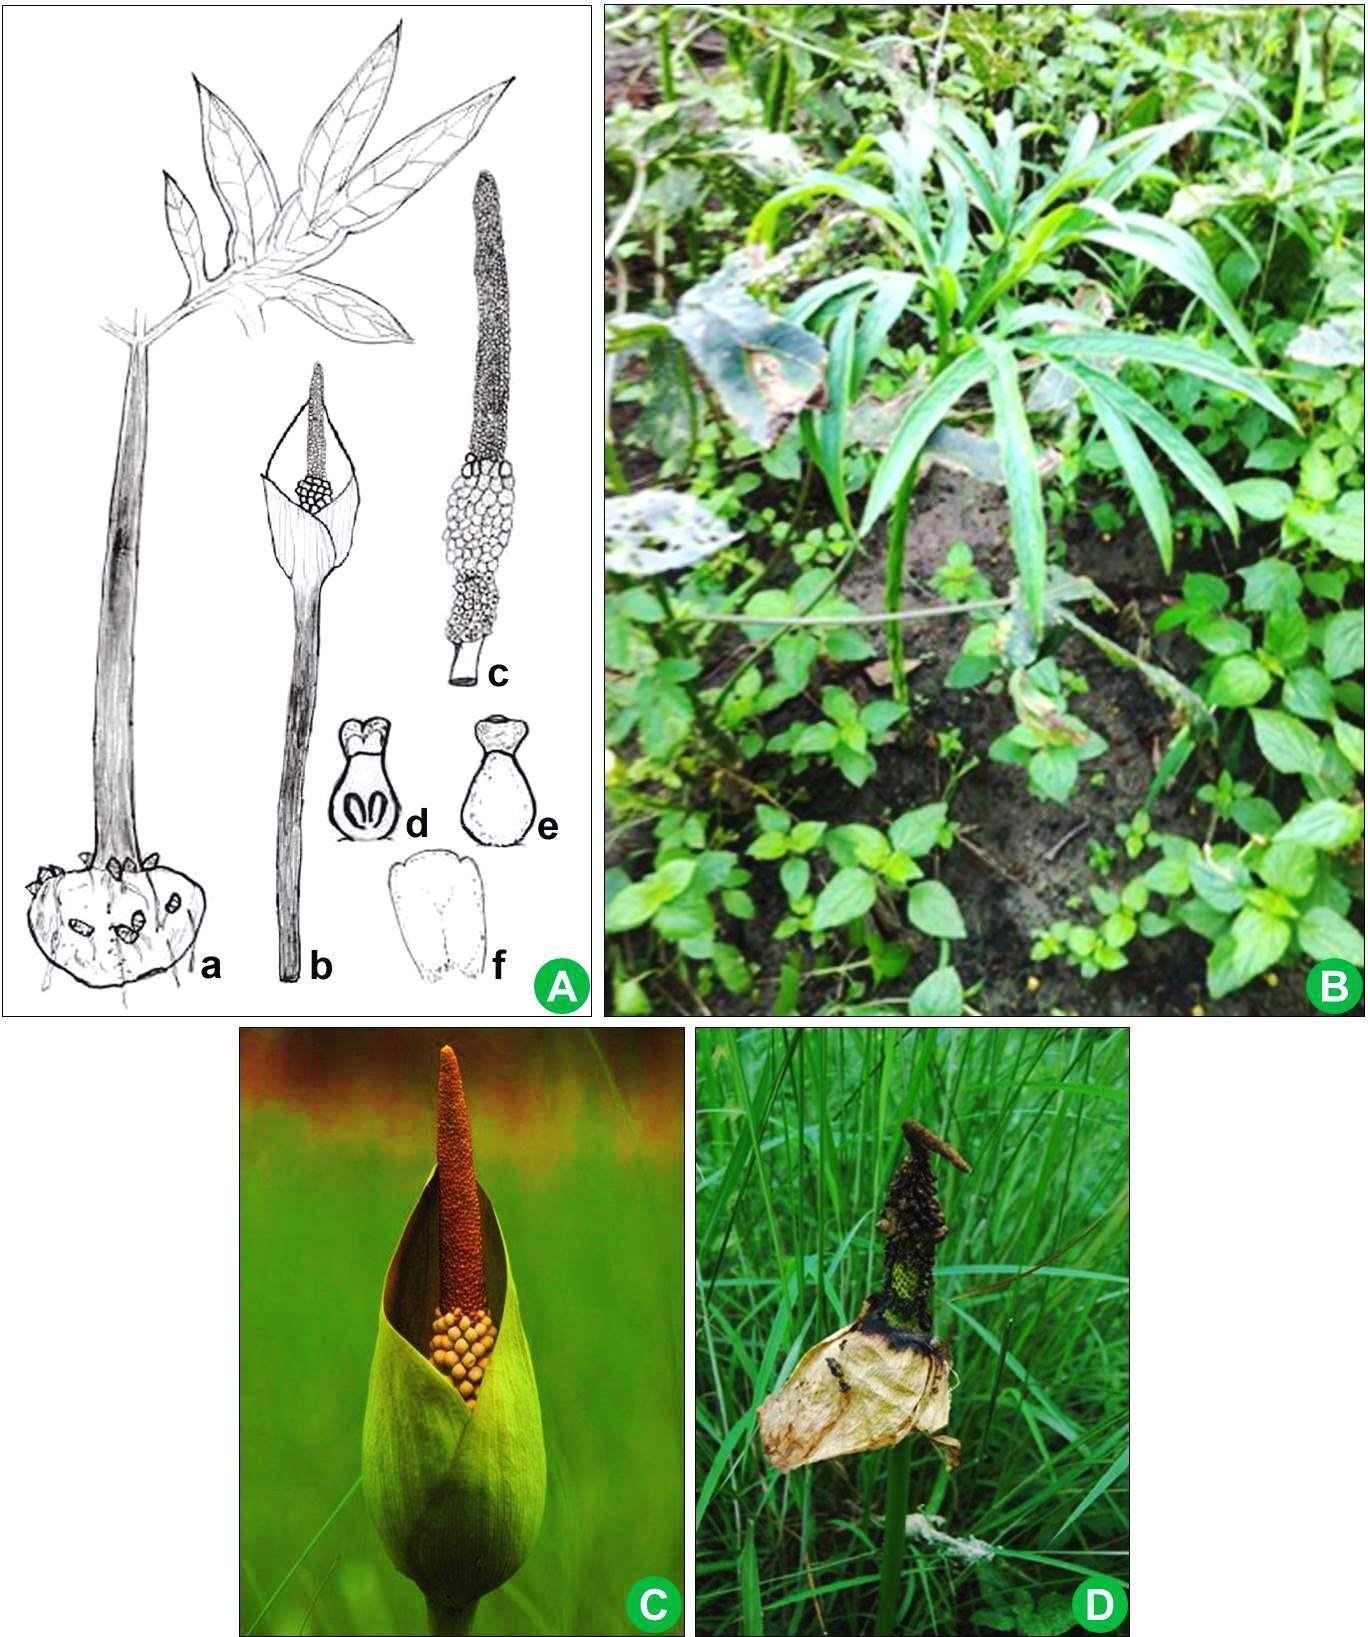 Amorphophallus margaritifer: A, Illustrations (a, Tuber with leaf; b, A mature peduncle with inflorescence; c, Inflorescence showing spadix, spathe removed and male and female flower zone; d, Female flower (L.S.); e, Single female flower; f, Male flower); B. A mature peduncle with lamina in its habitat; C, Spadix at mature stage; D, Inflorescence showing spadix.